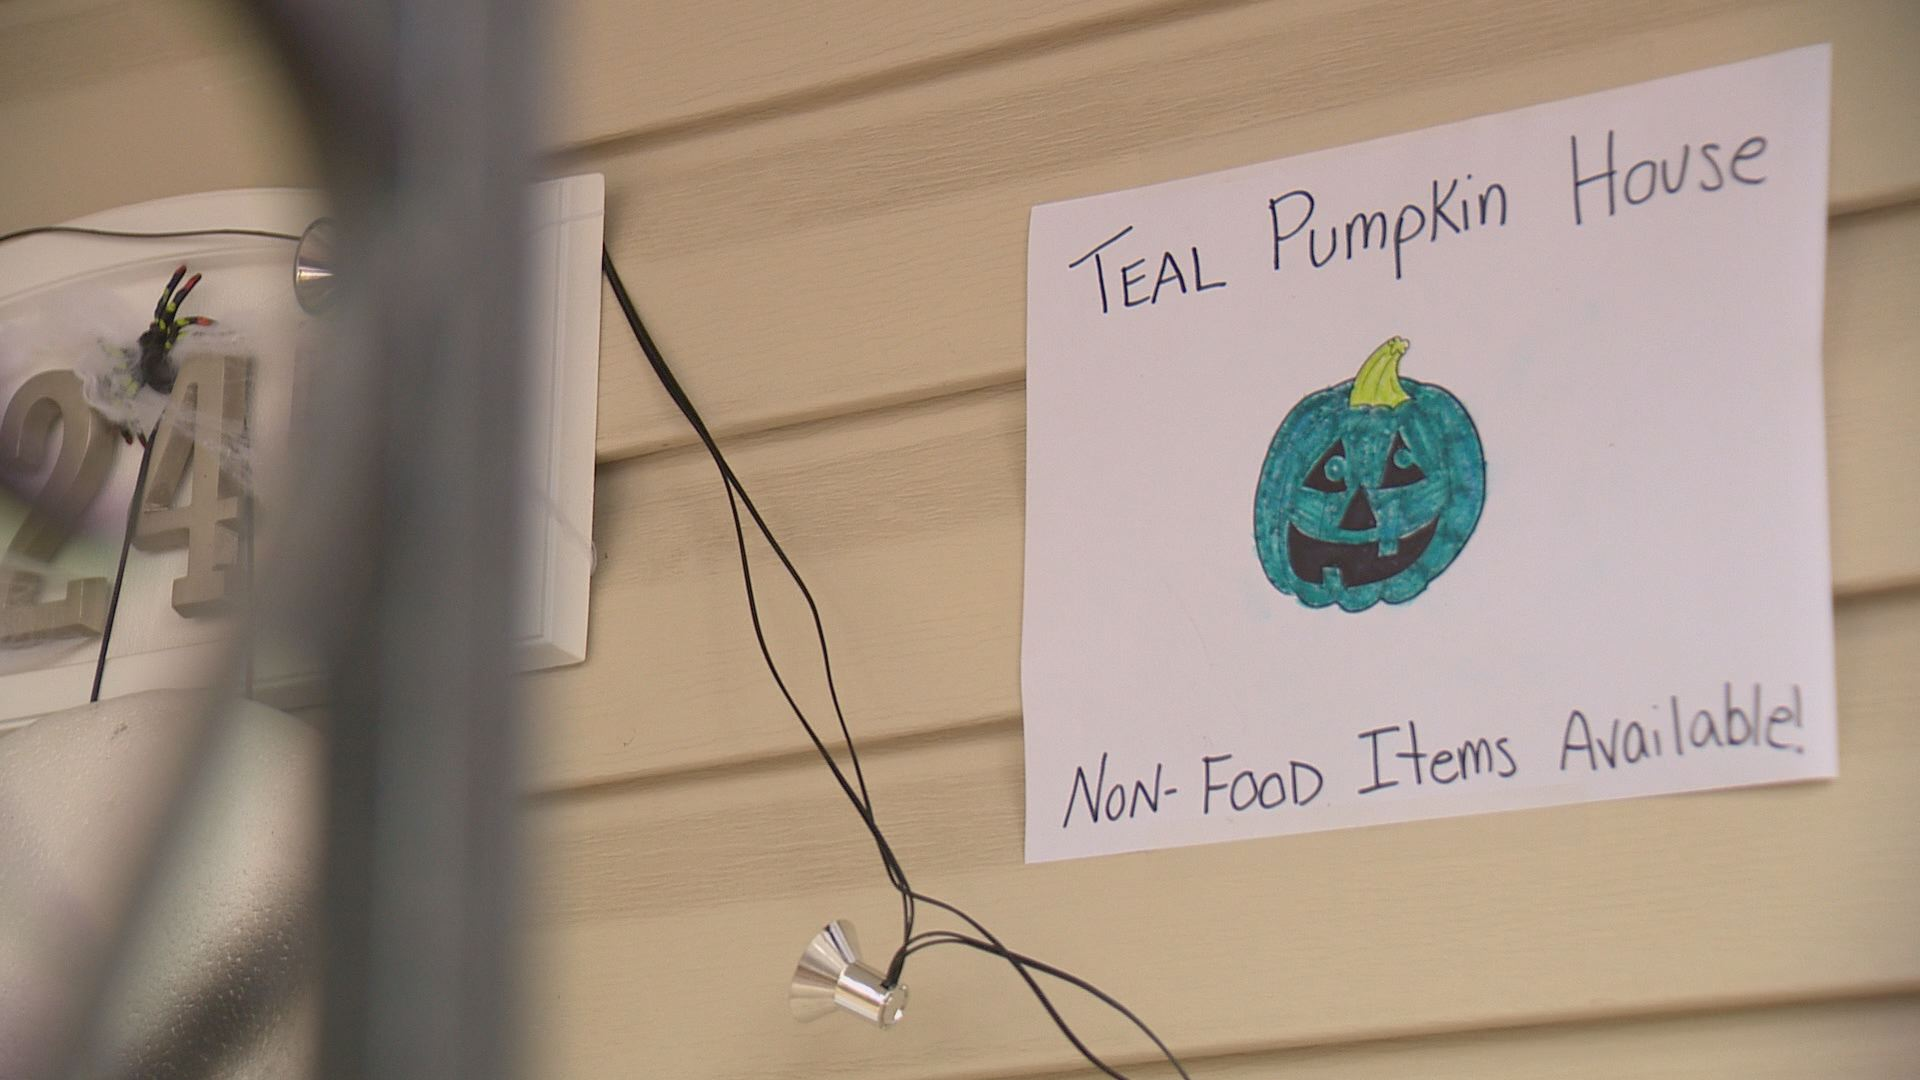 Tricks And (Non-Allergenic) Treats: Project Aims For Halloween Inclusion